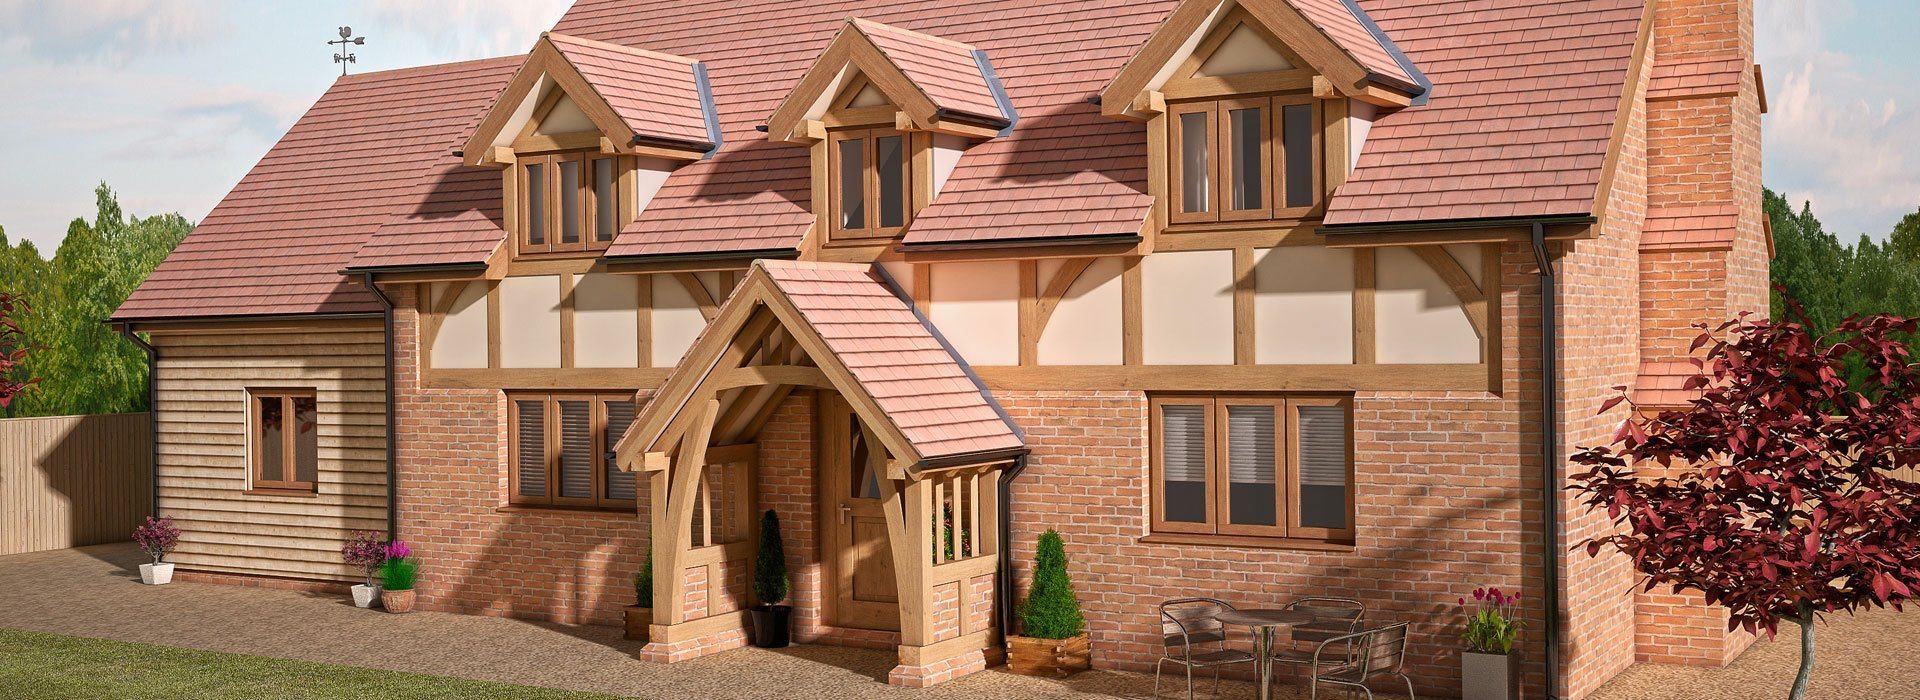 A large new build house with wooden window frames and roof windows